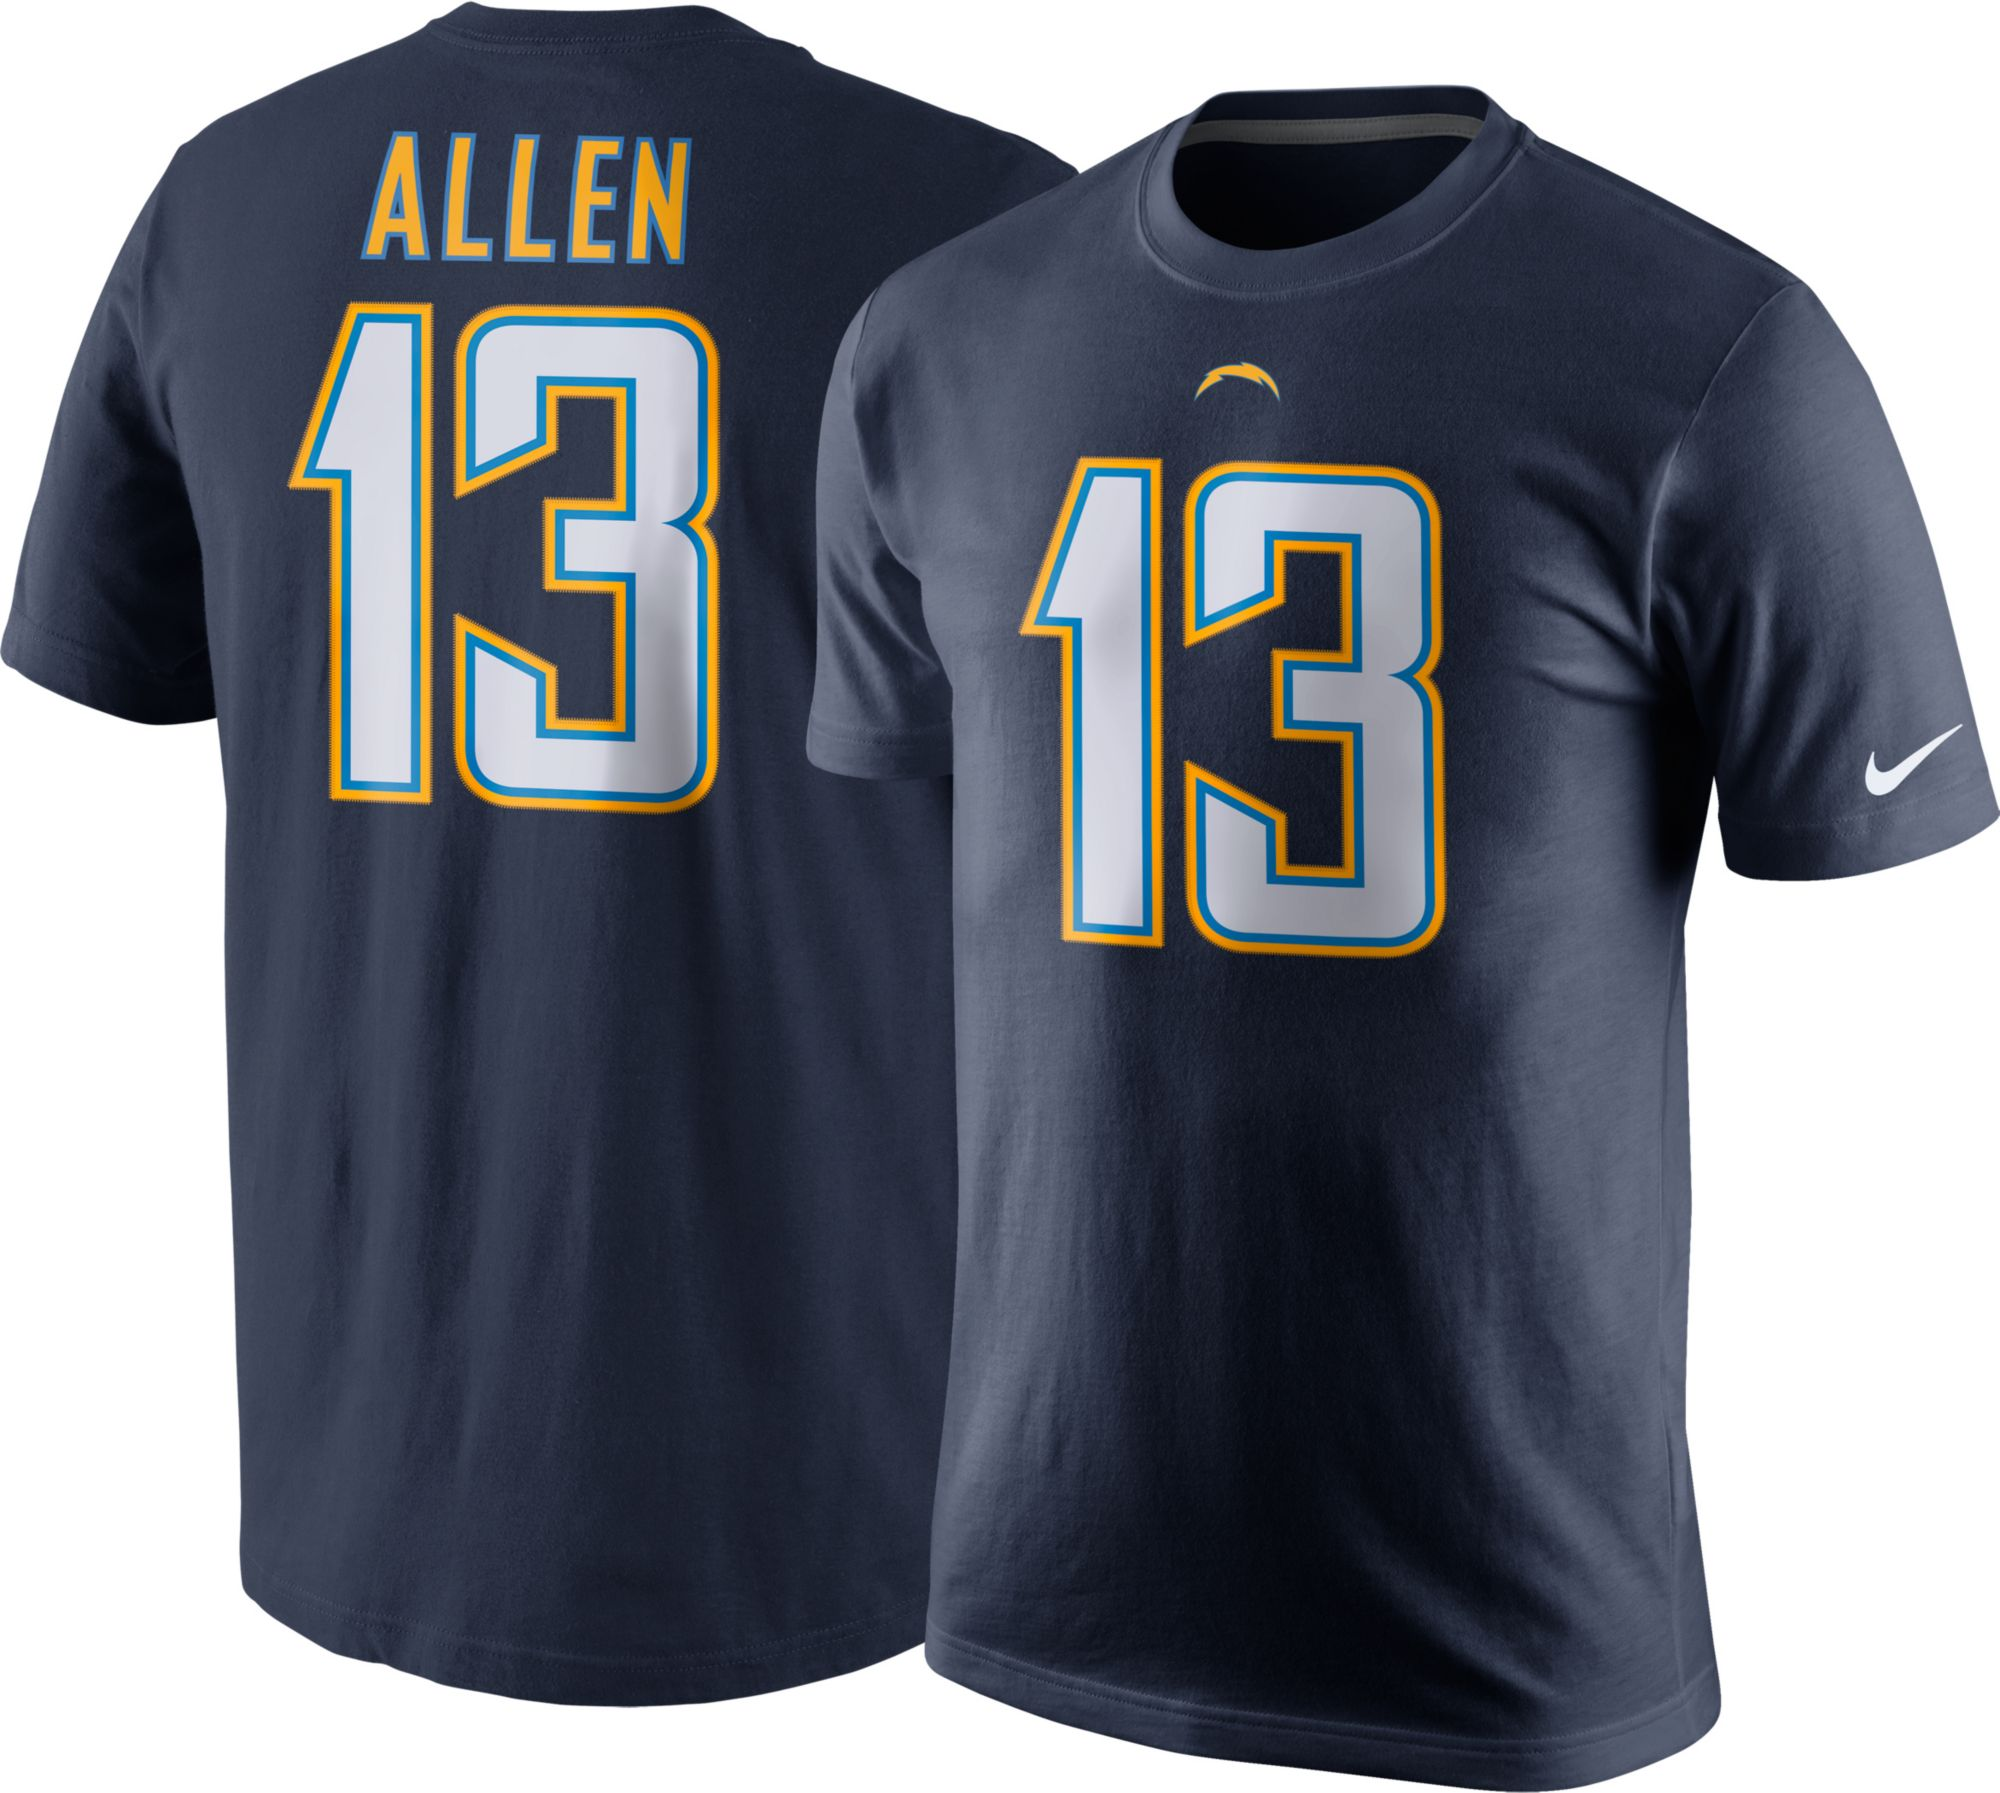 5362aee25 ... Electric Blue Alternate Mens Stitched NFL Vapor Untouchable Nike Mens  Los Angeles Chargers Keenan Allen 13 Pride Navy T ...